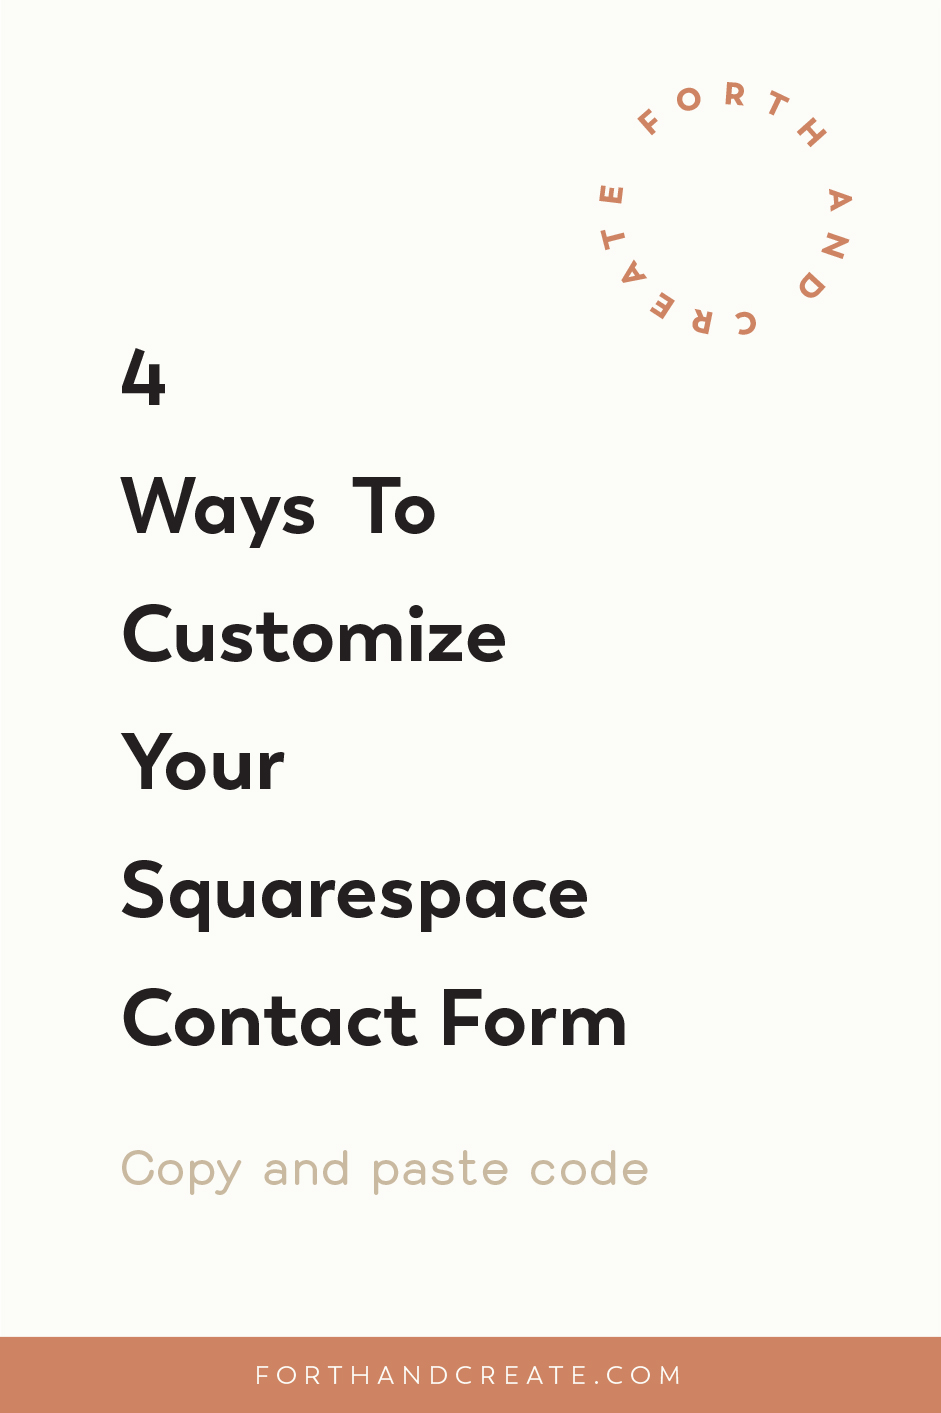 4 Ways To Customize Your Squarespace Contact Form #Squarespace #contactform #Squarespacetip #Websitedesign